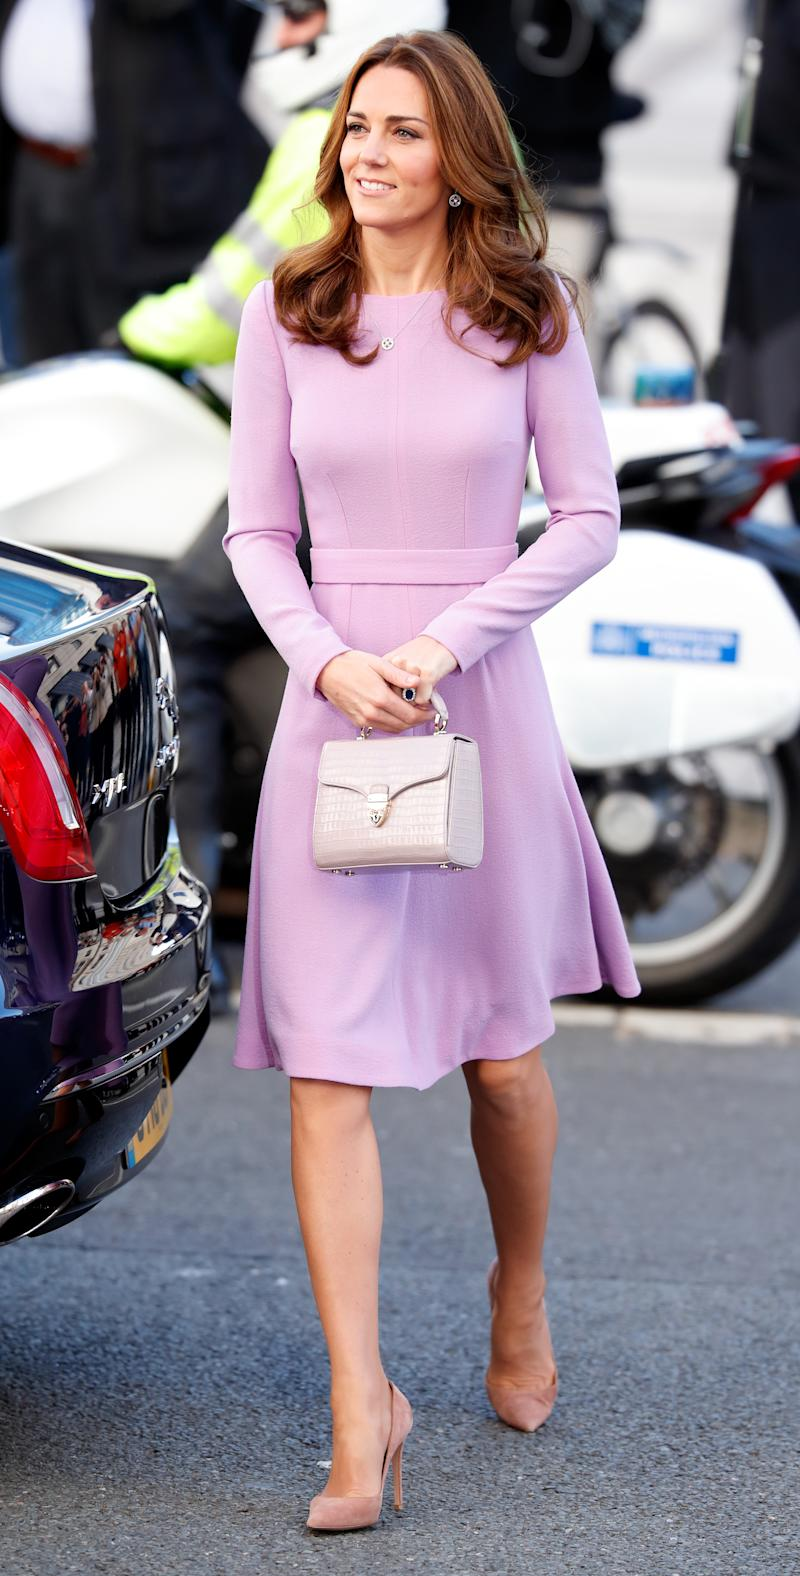 Kate Middleton mit der Midi Mayfair Handtasche von Aspinal London. (Foto von Max Mumby/Indigo/Getty Images)